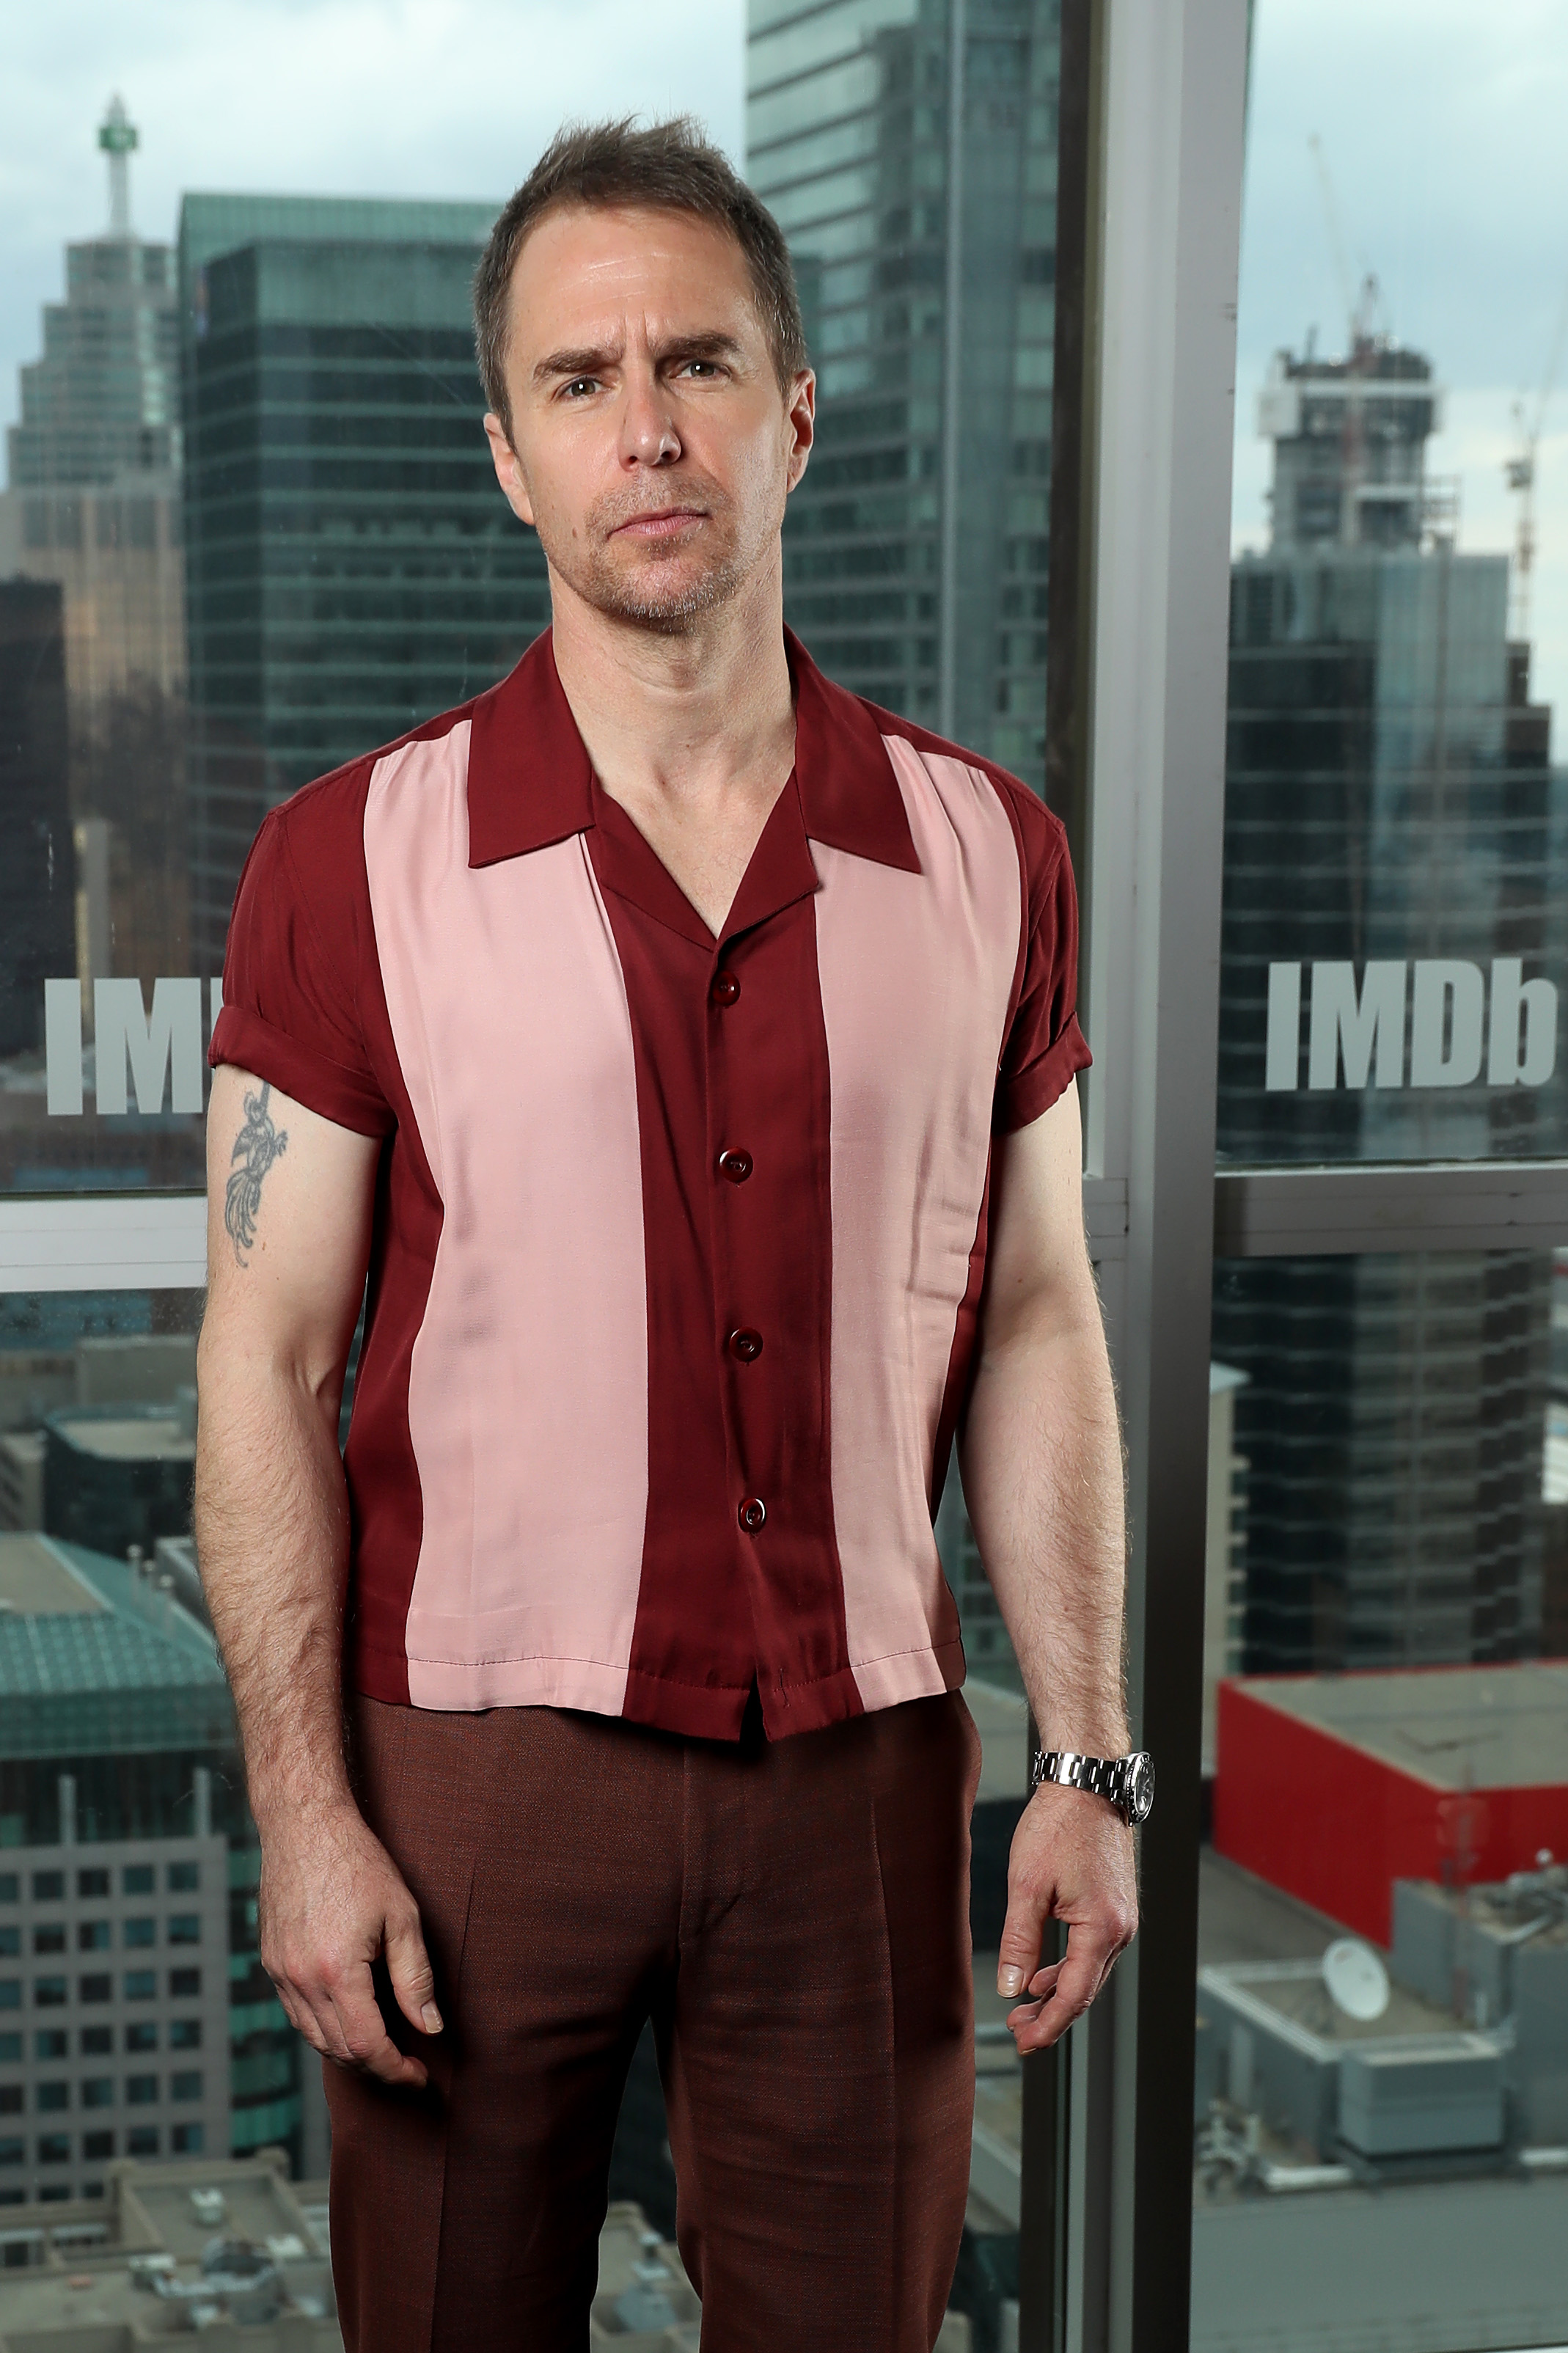 Sam Rockwell at an event for Jojo Rabbit (2019)